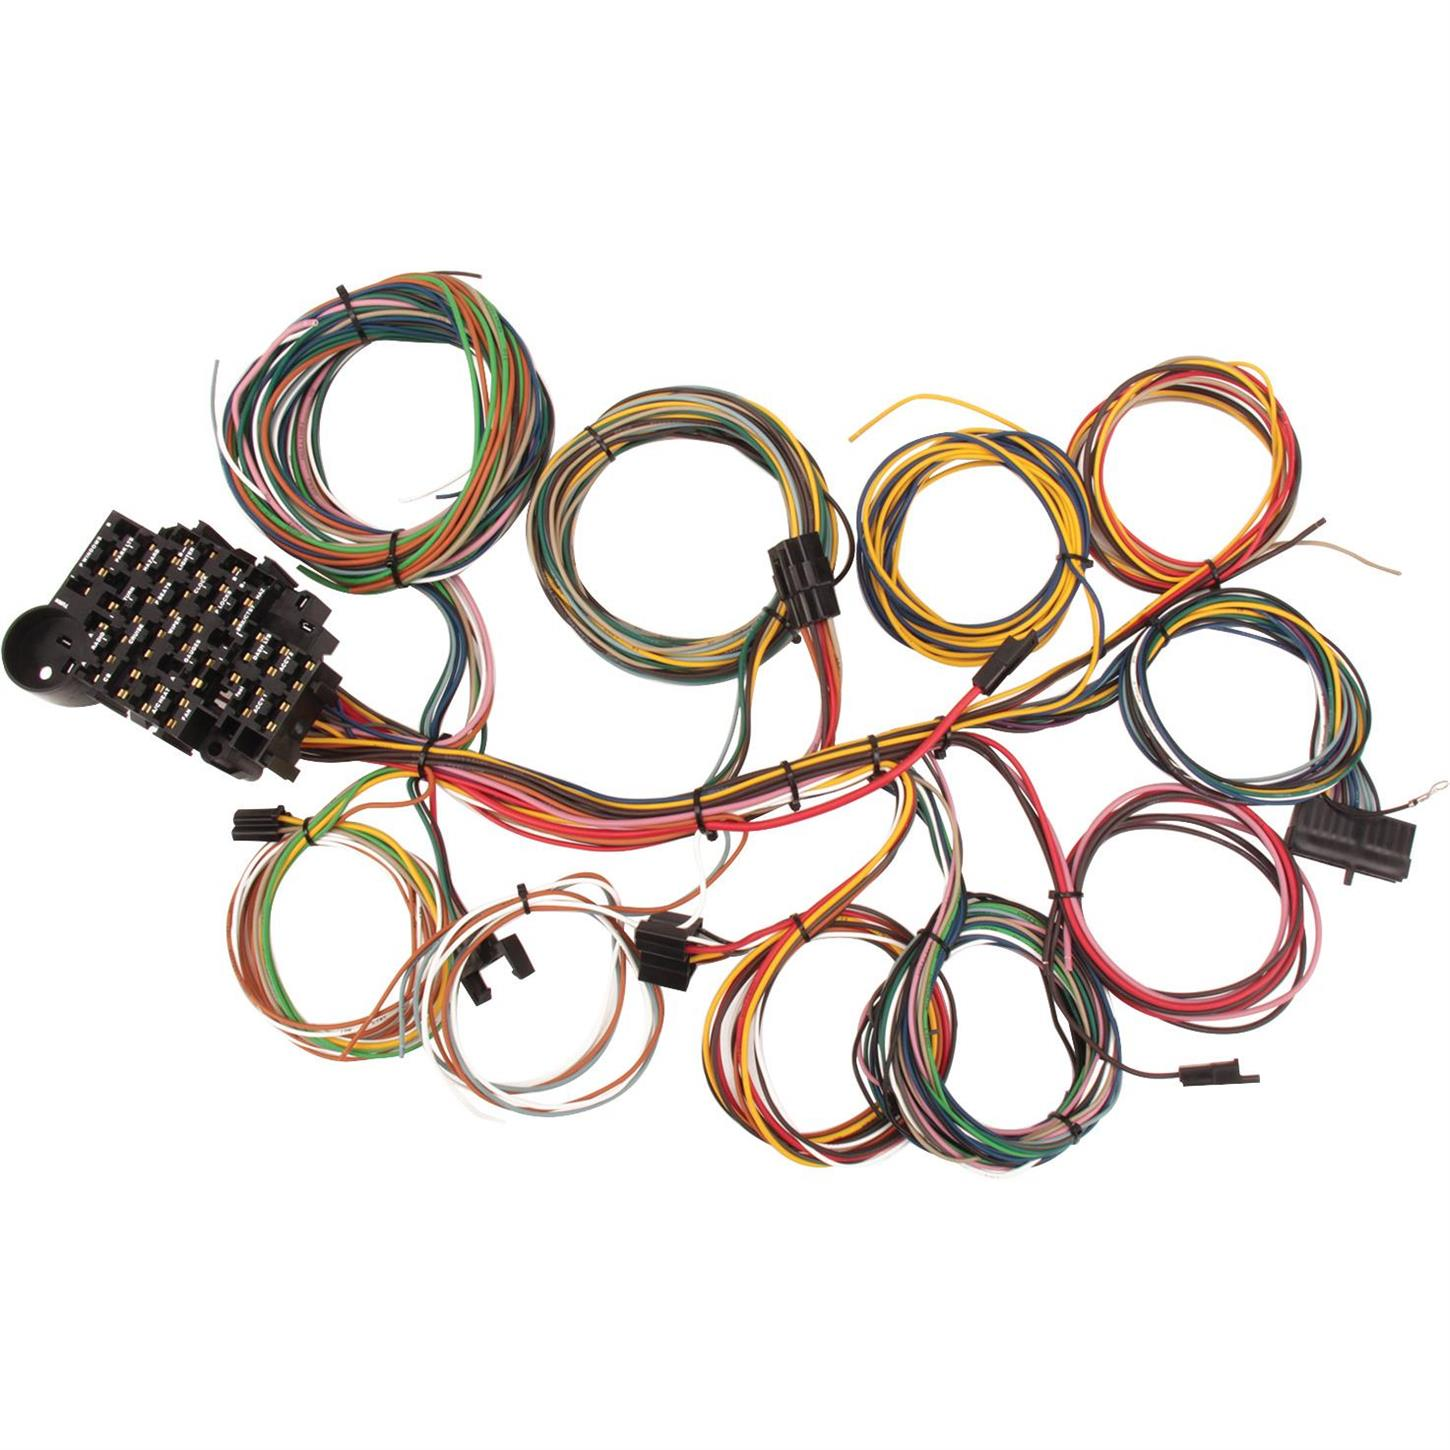 91064022_L1450_4a5a9e43 cdd2 4b2c 9c68 457f296054bd selecting a wiring harness for your street rod  at virtualis.co